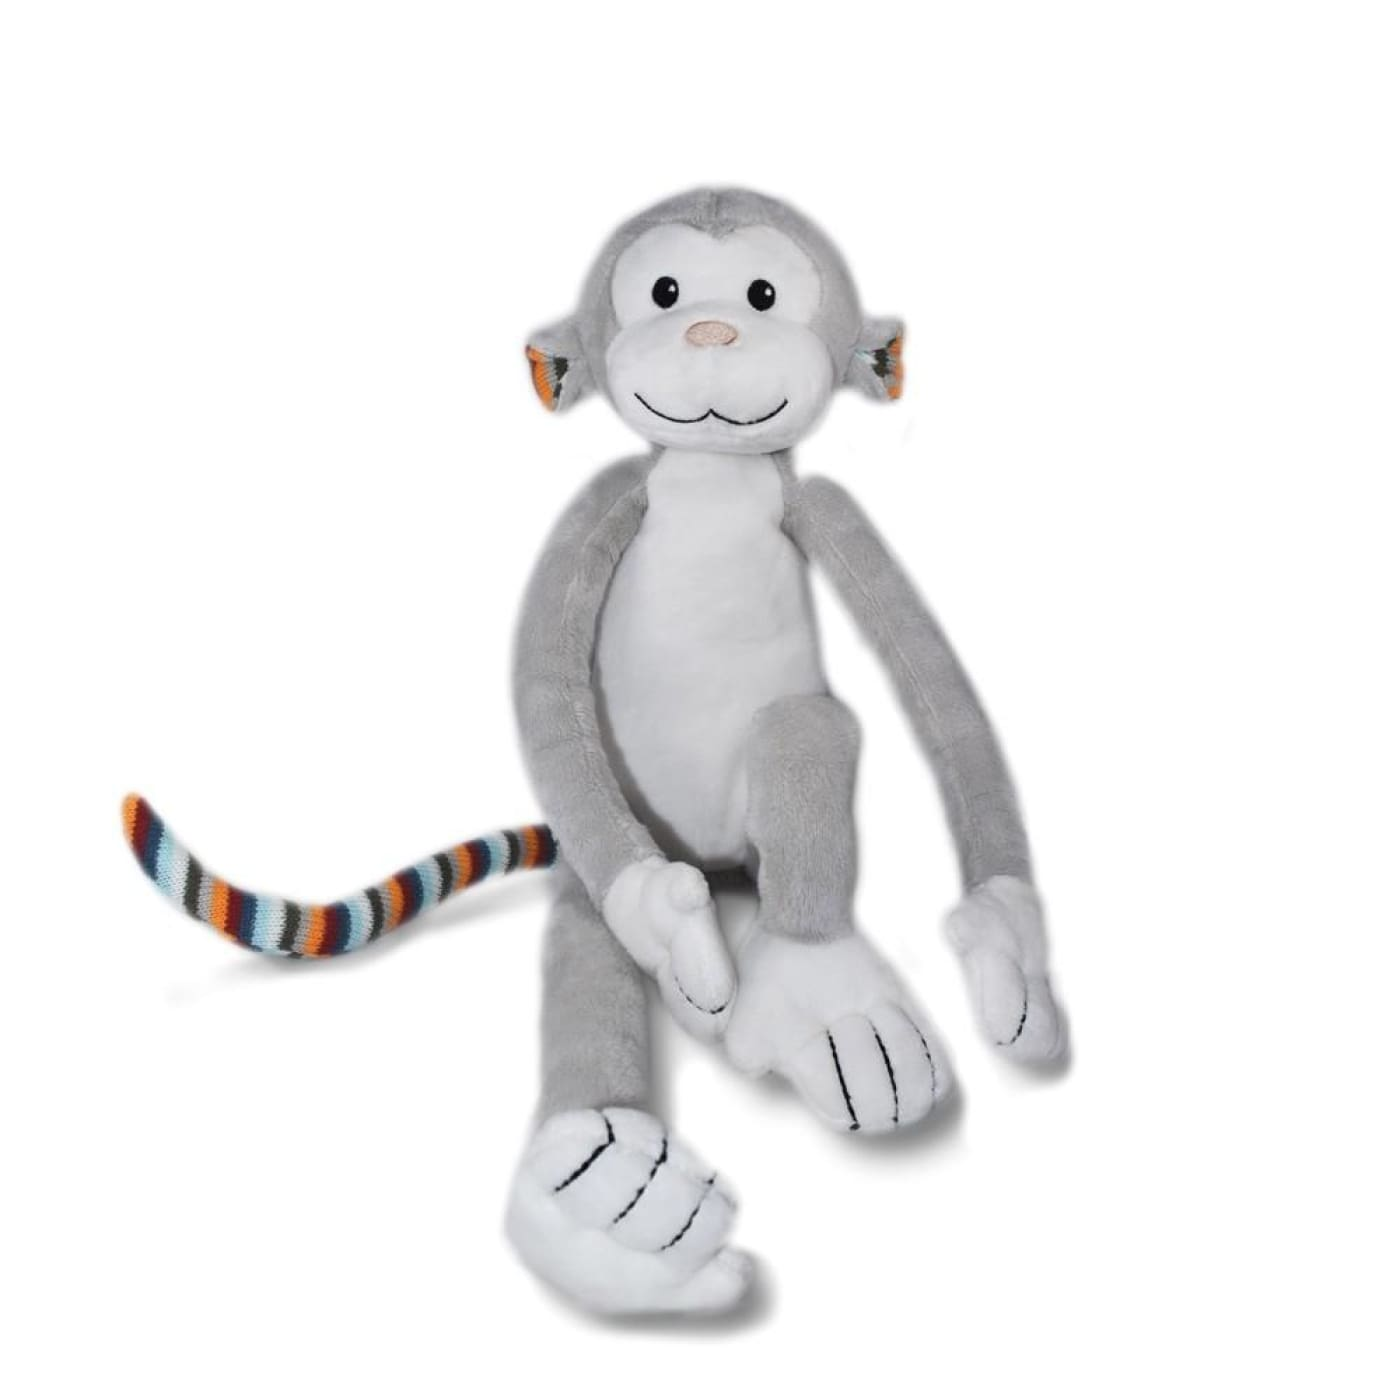 Zazu Soft Toy Nightlight with Melodies - Max - Monkey - NURSERY & BEDTIME - SLEEP AIDS/NIGHT LIGHTS